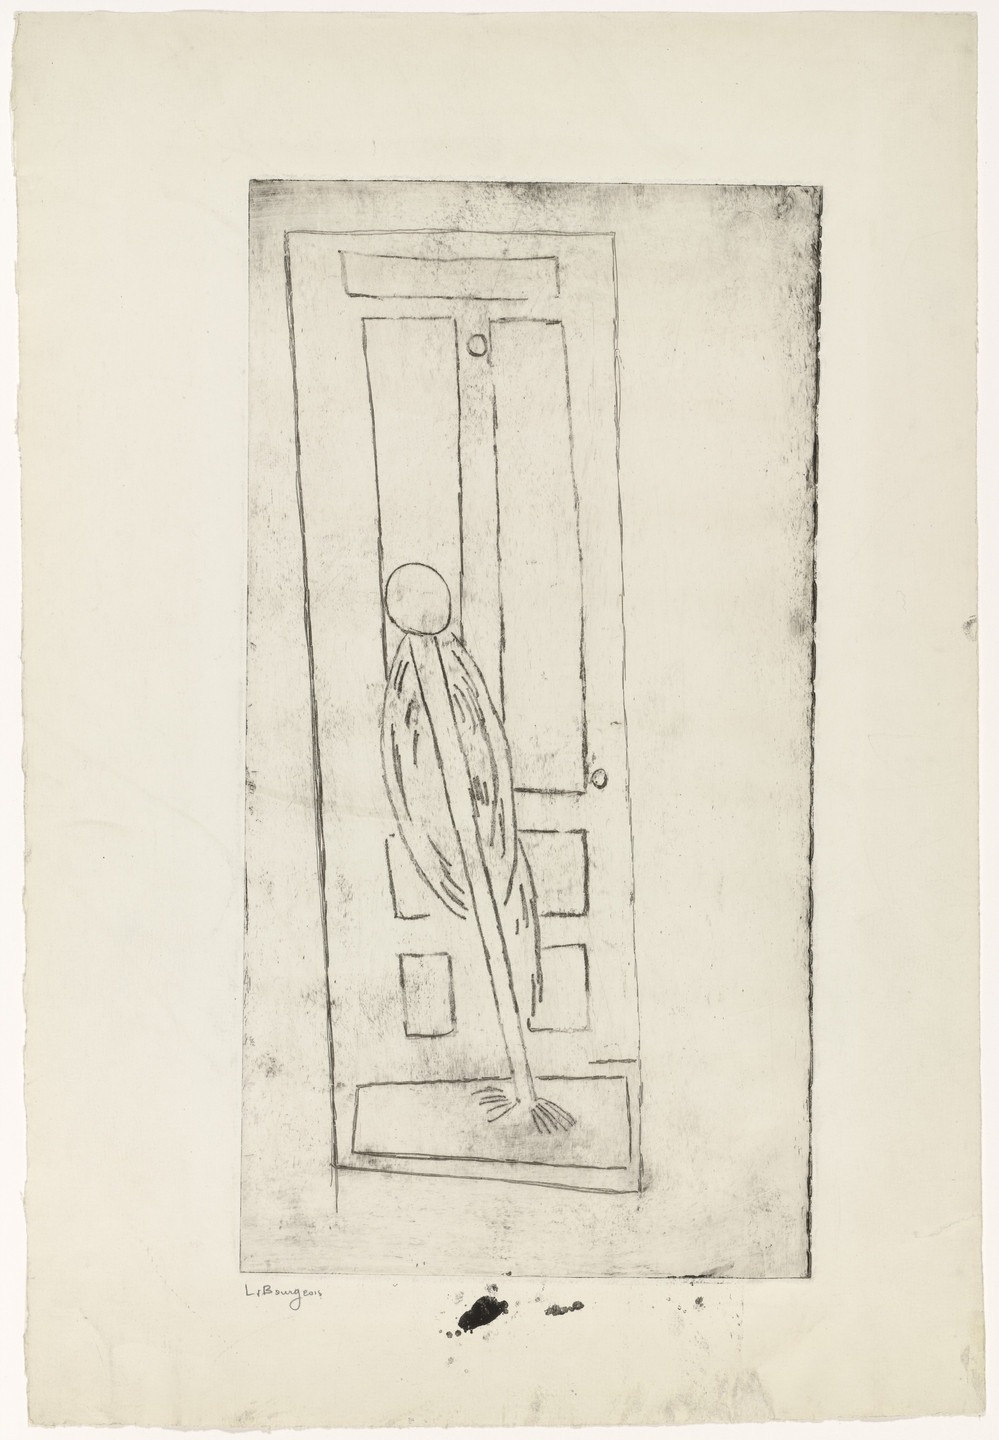 Louise Bourgeois. Thompson Street. c. 1946